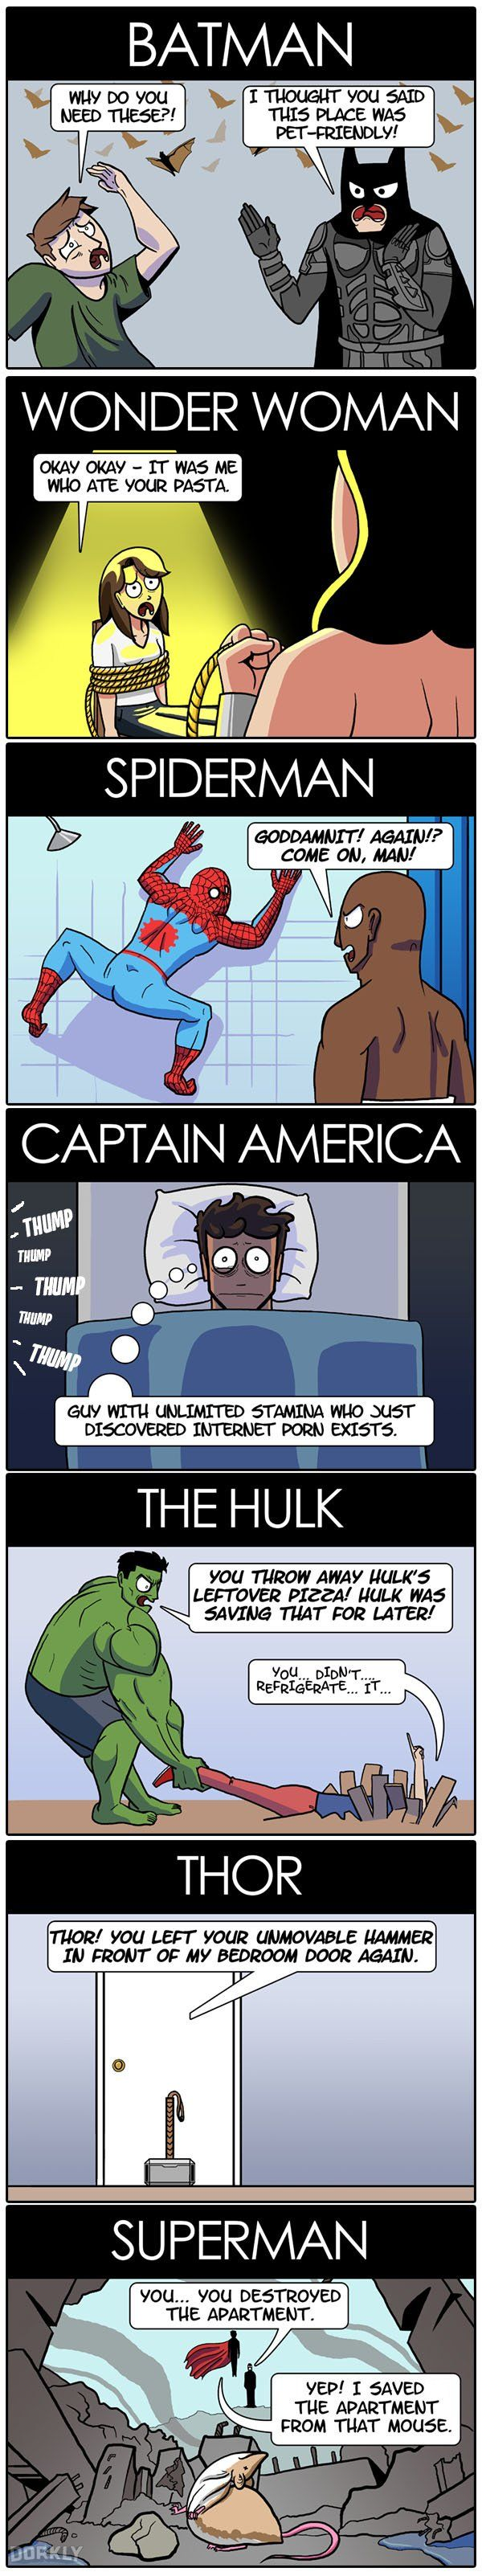 """Superheroes Who Would Make Terrible Roommates"" #dorkly #geek #superheroes"